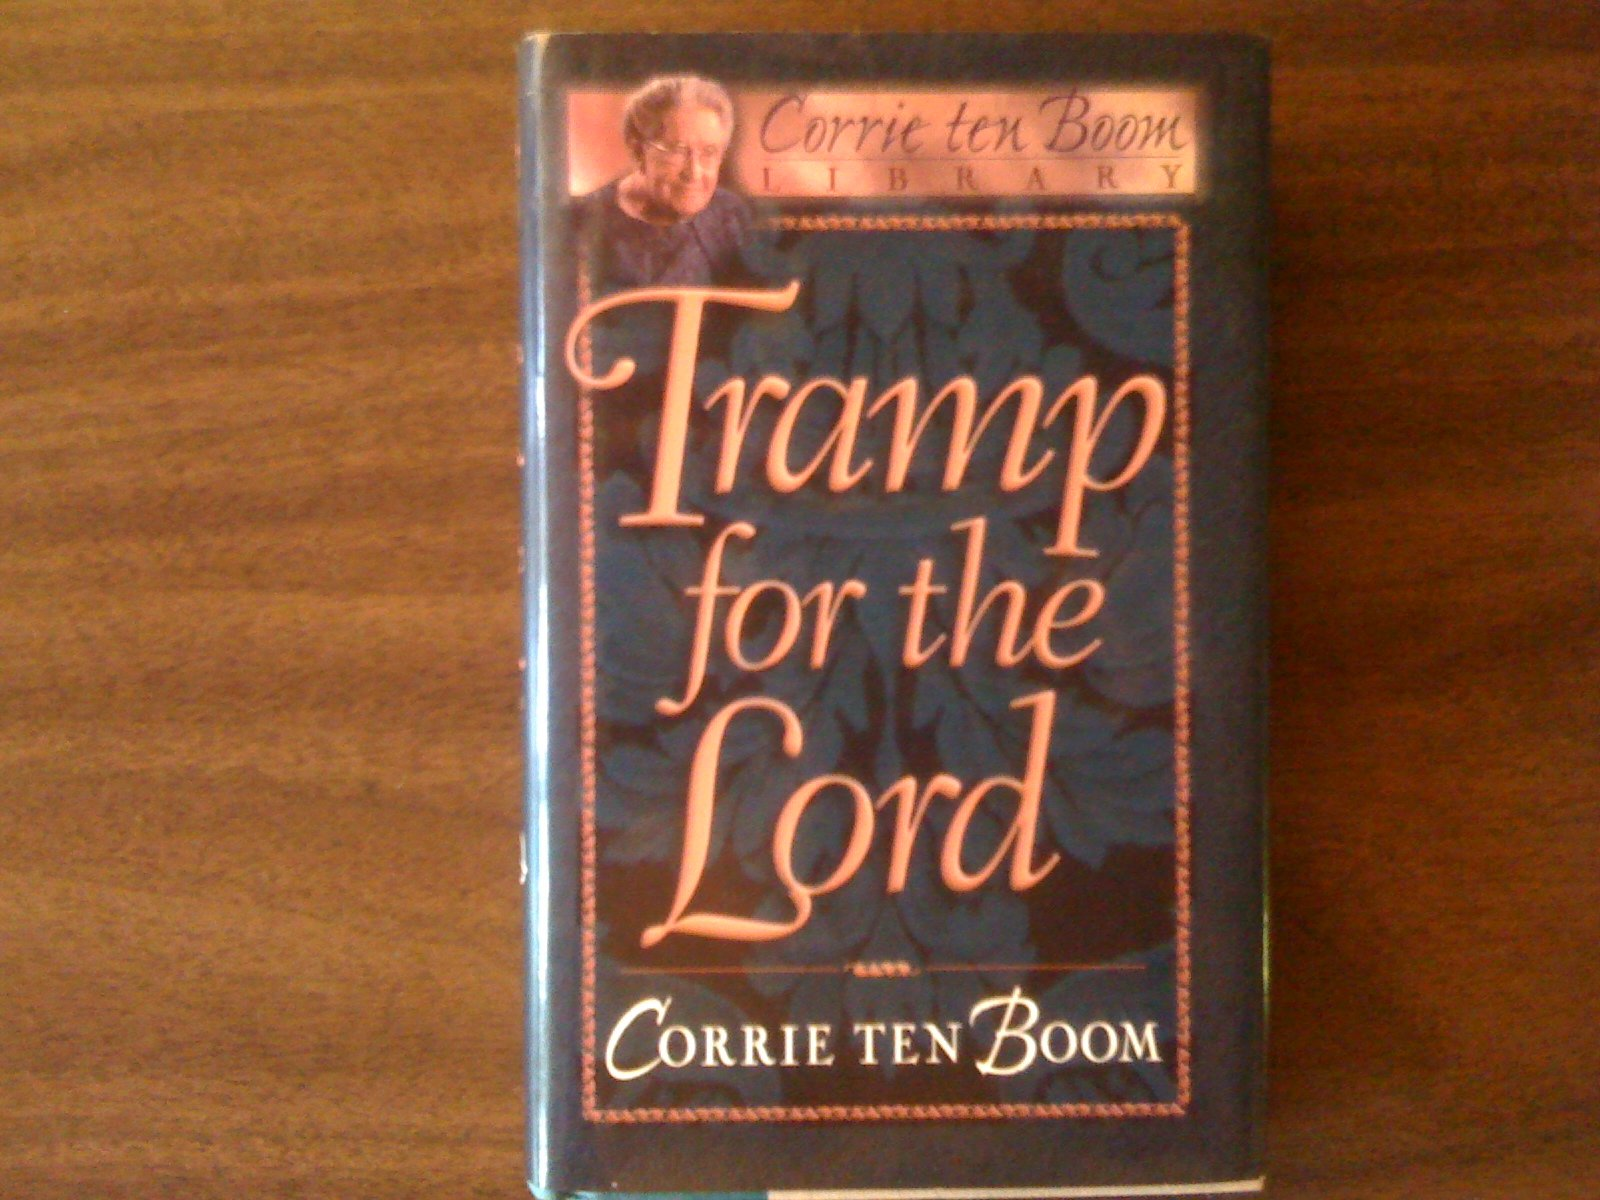 Tramp for the lord by corrie tenboom corrie ten boom amazon com books